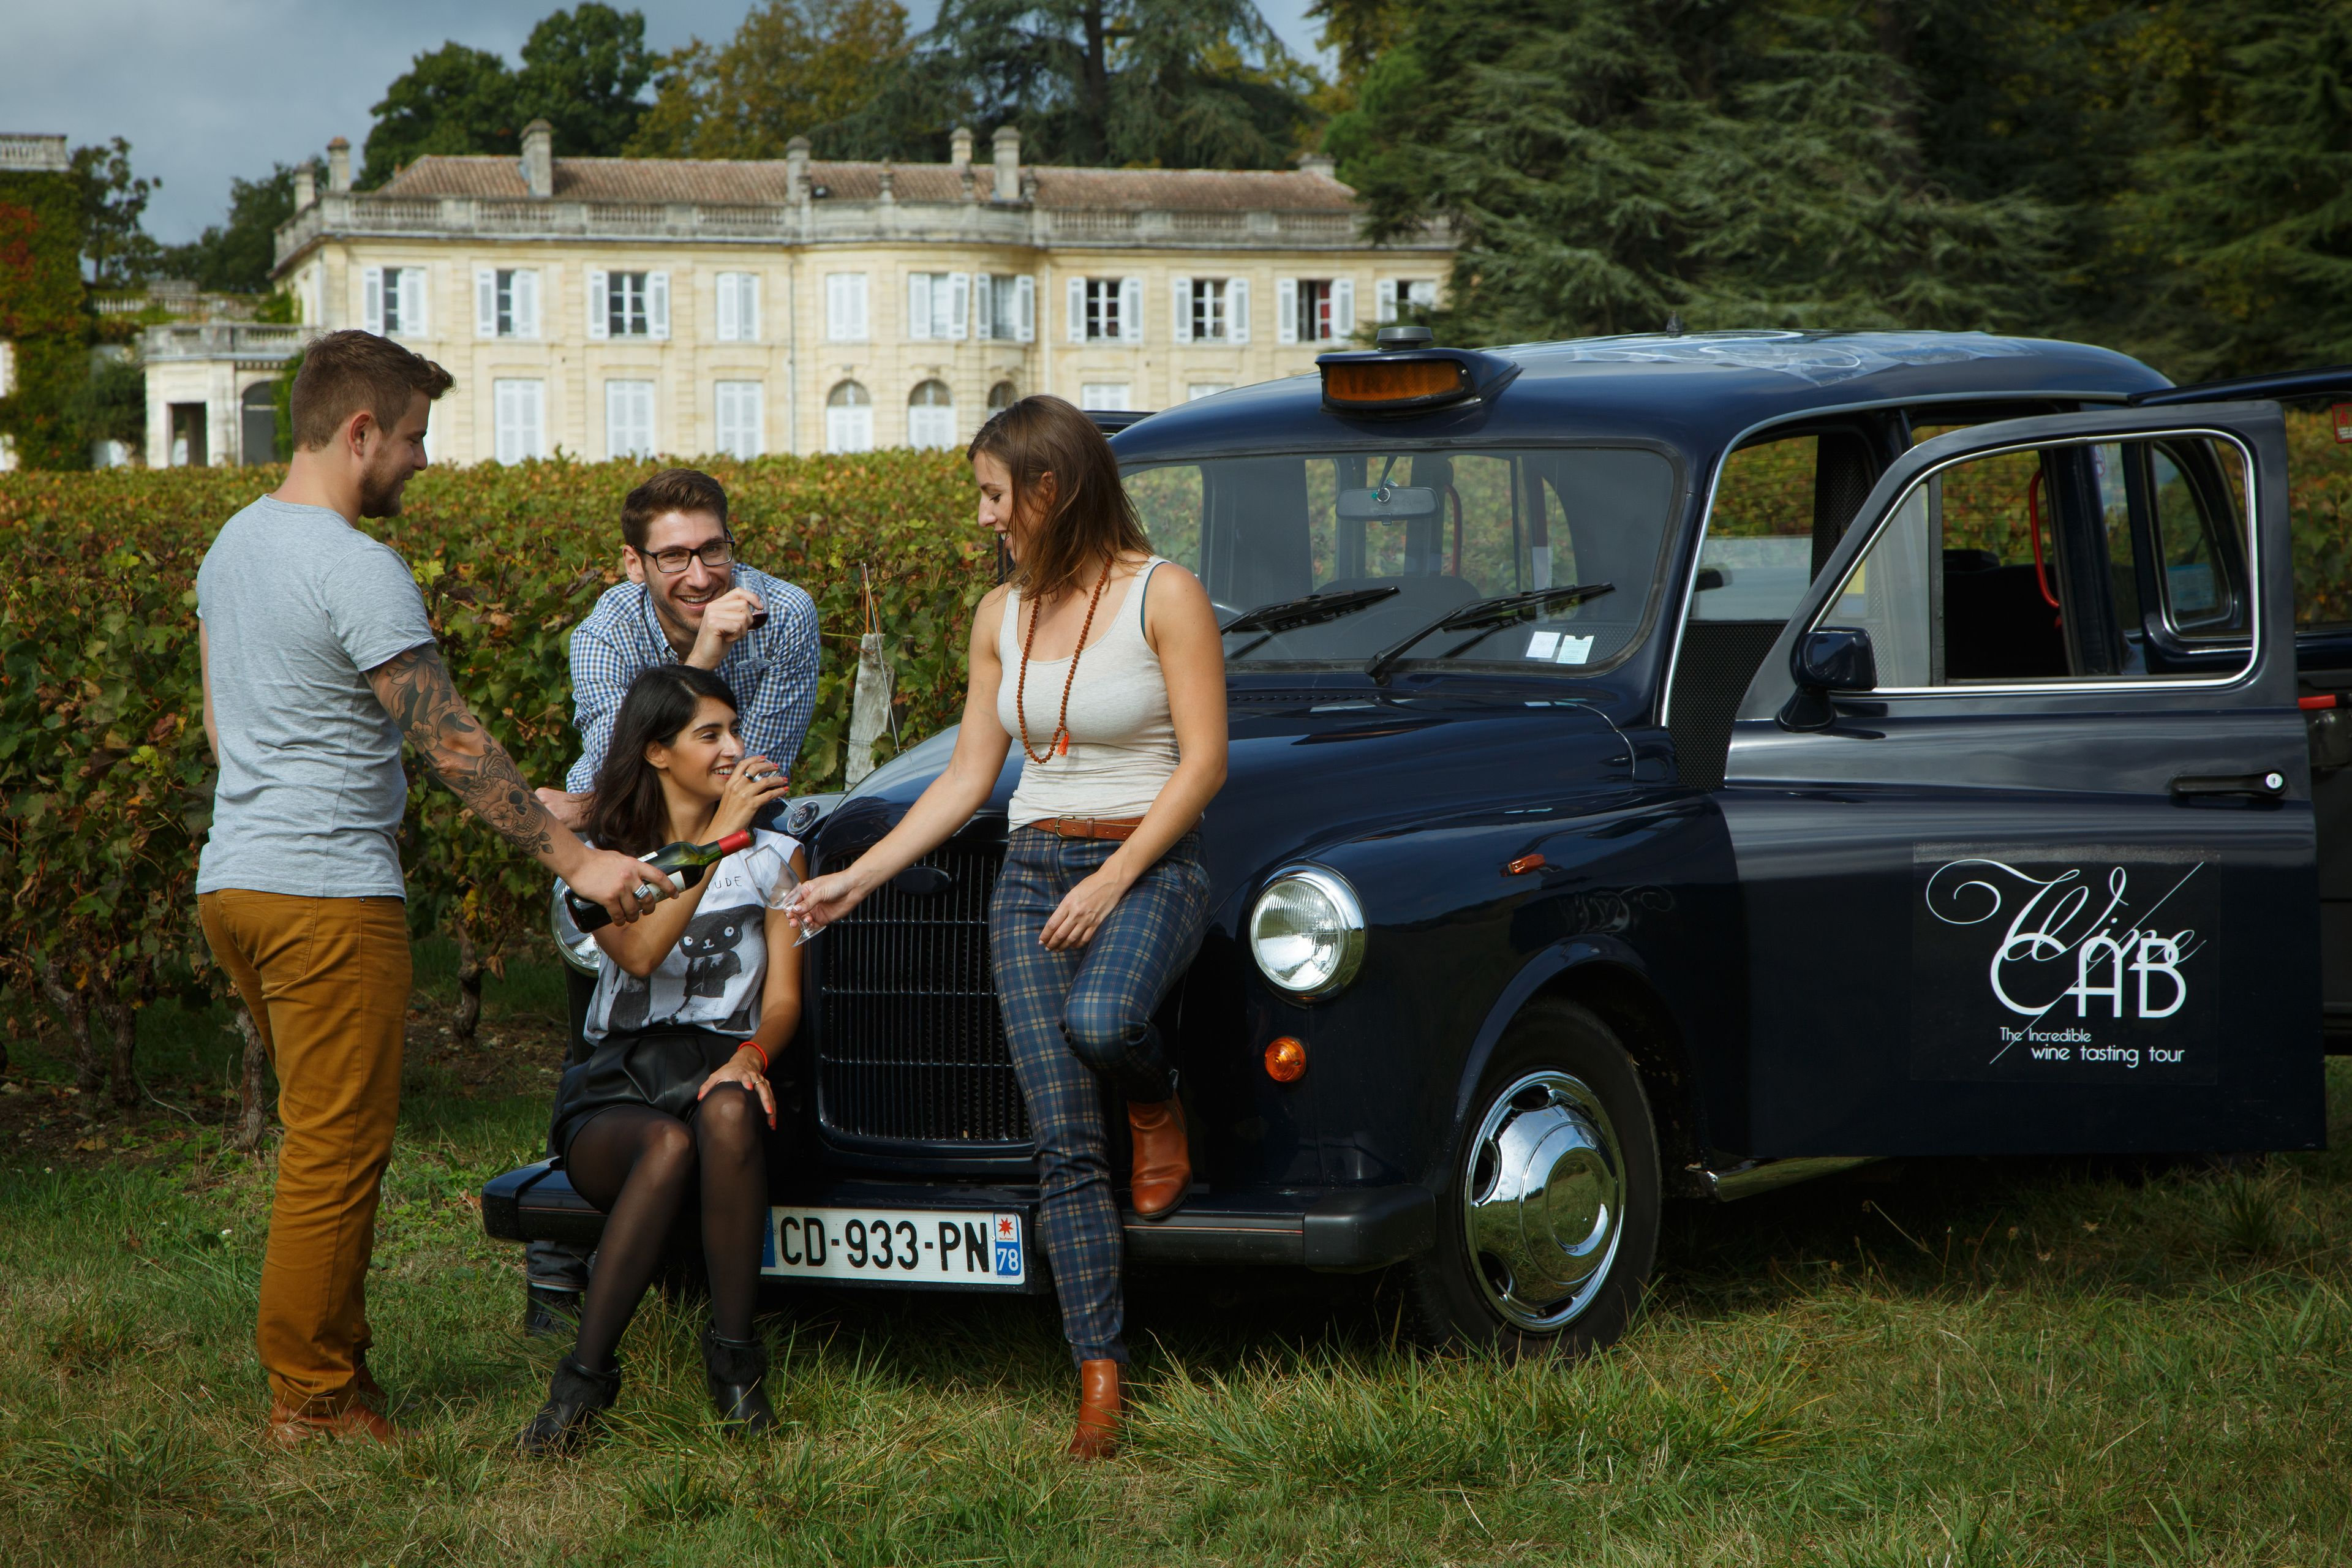 Four young people drinking wine on the hood of a wine cab in France